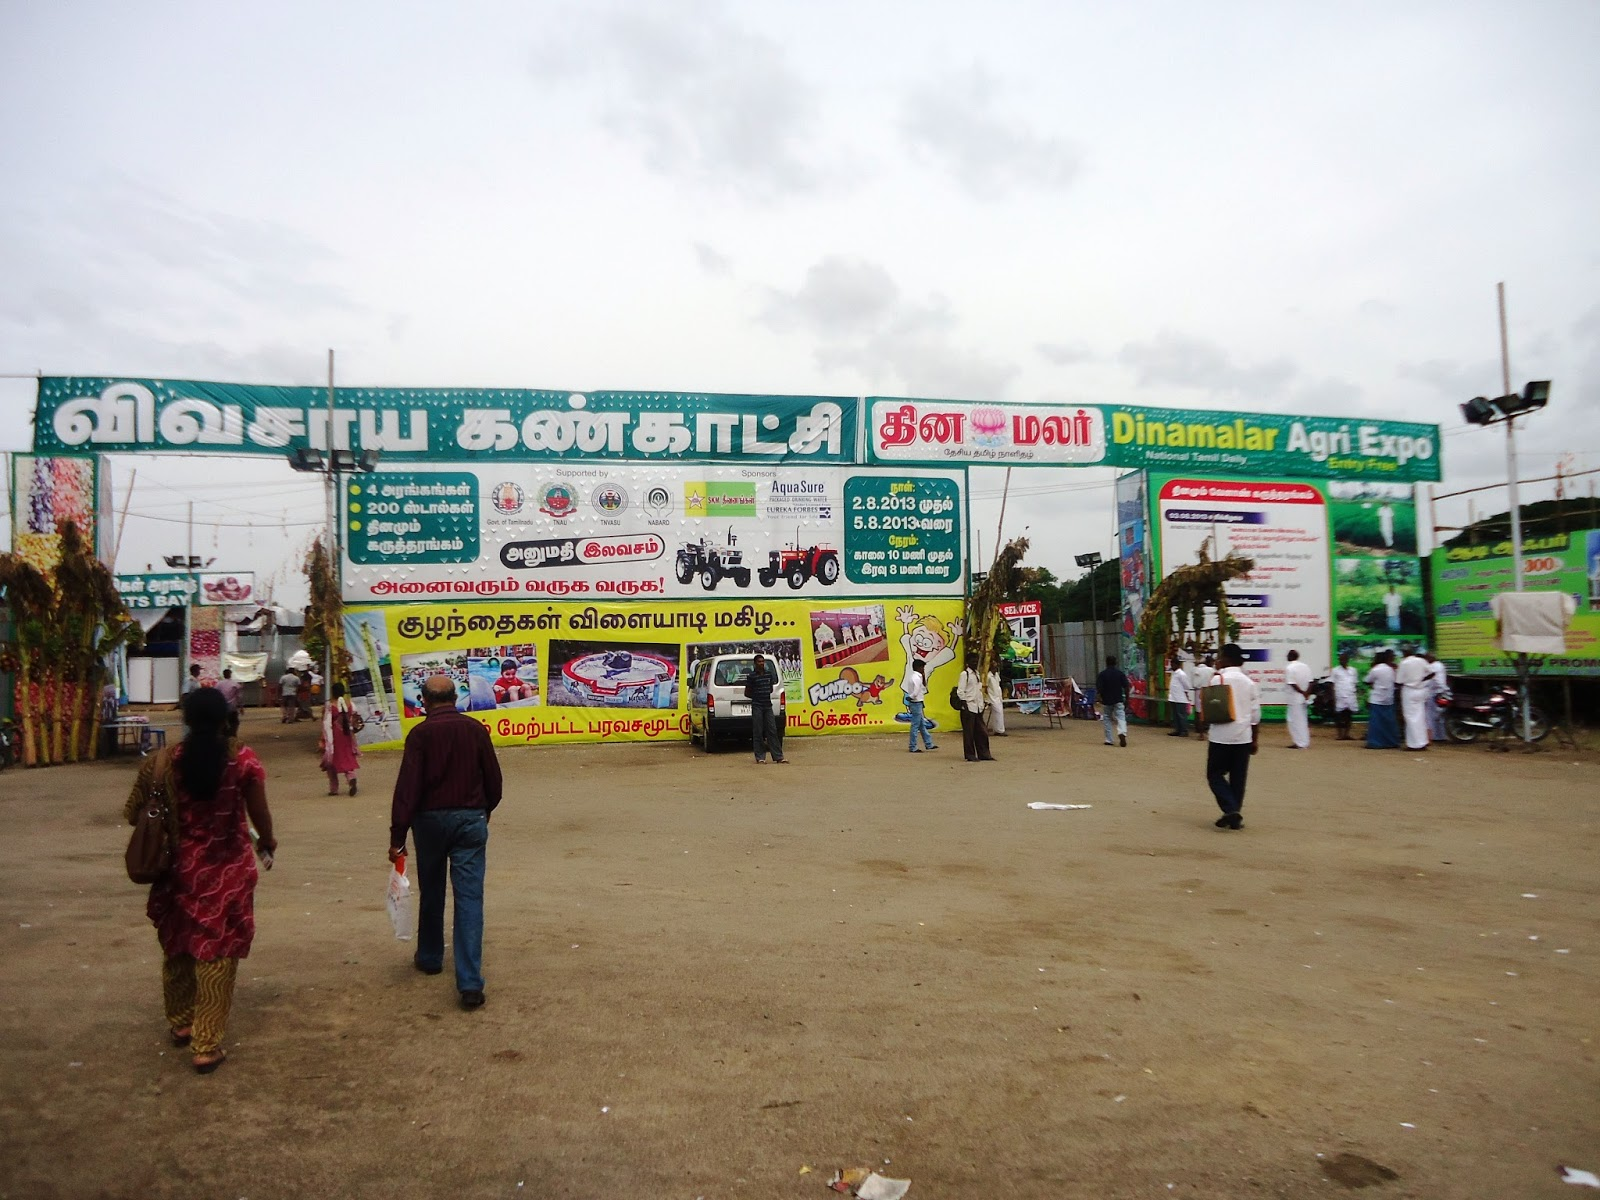 Eco Green Unit: Dinamalar,Agri Expo at Vellore Tamil Nadu